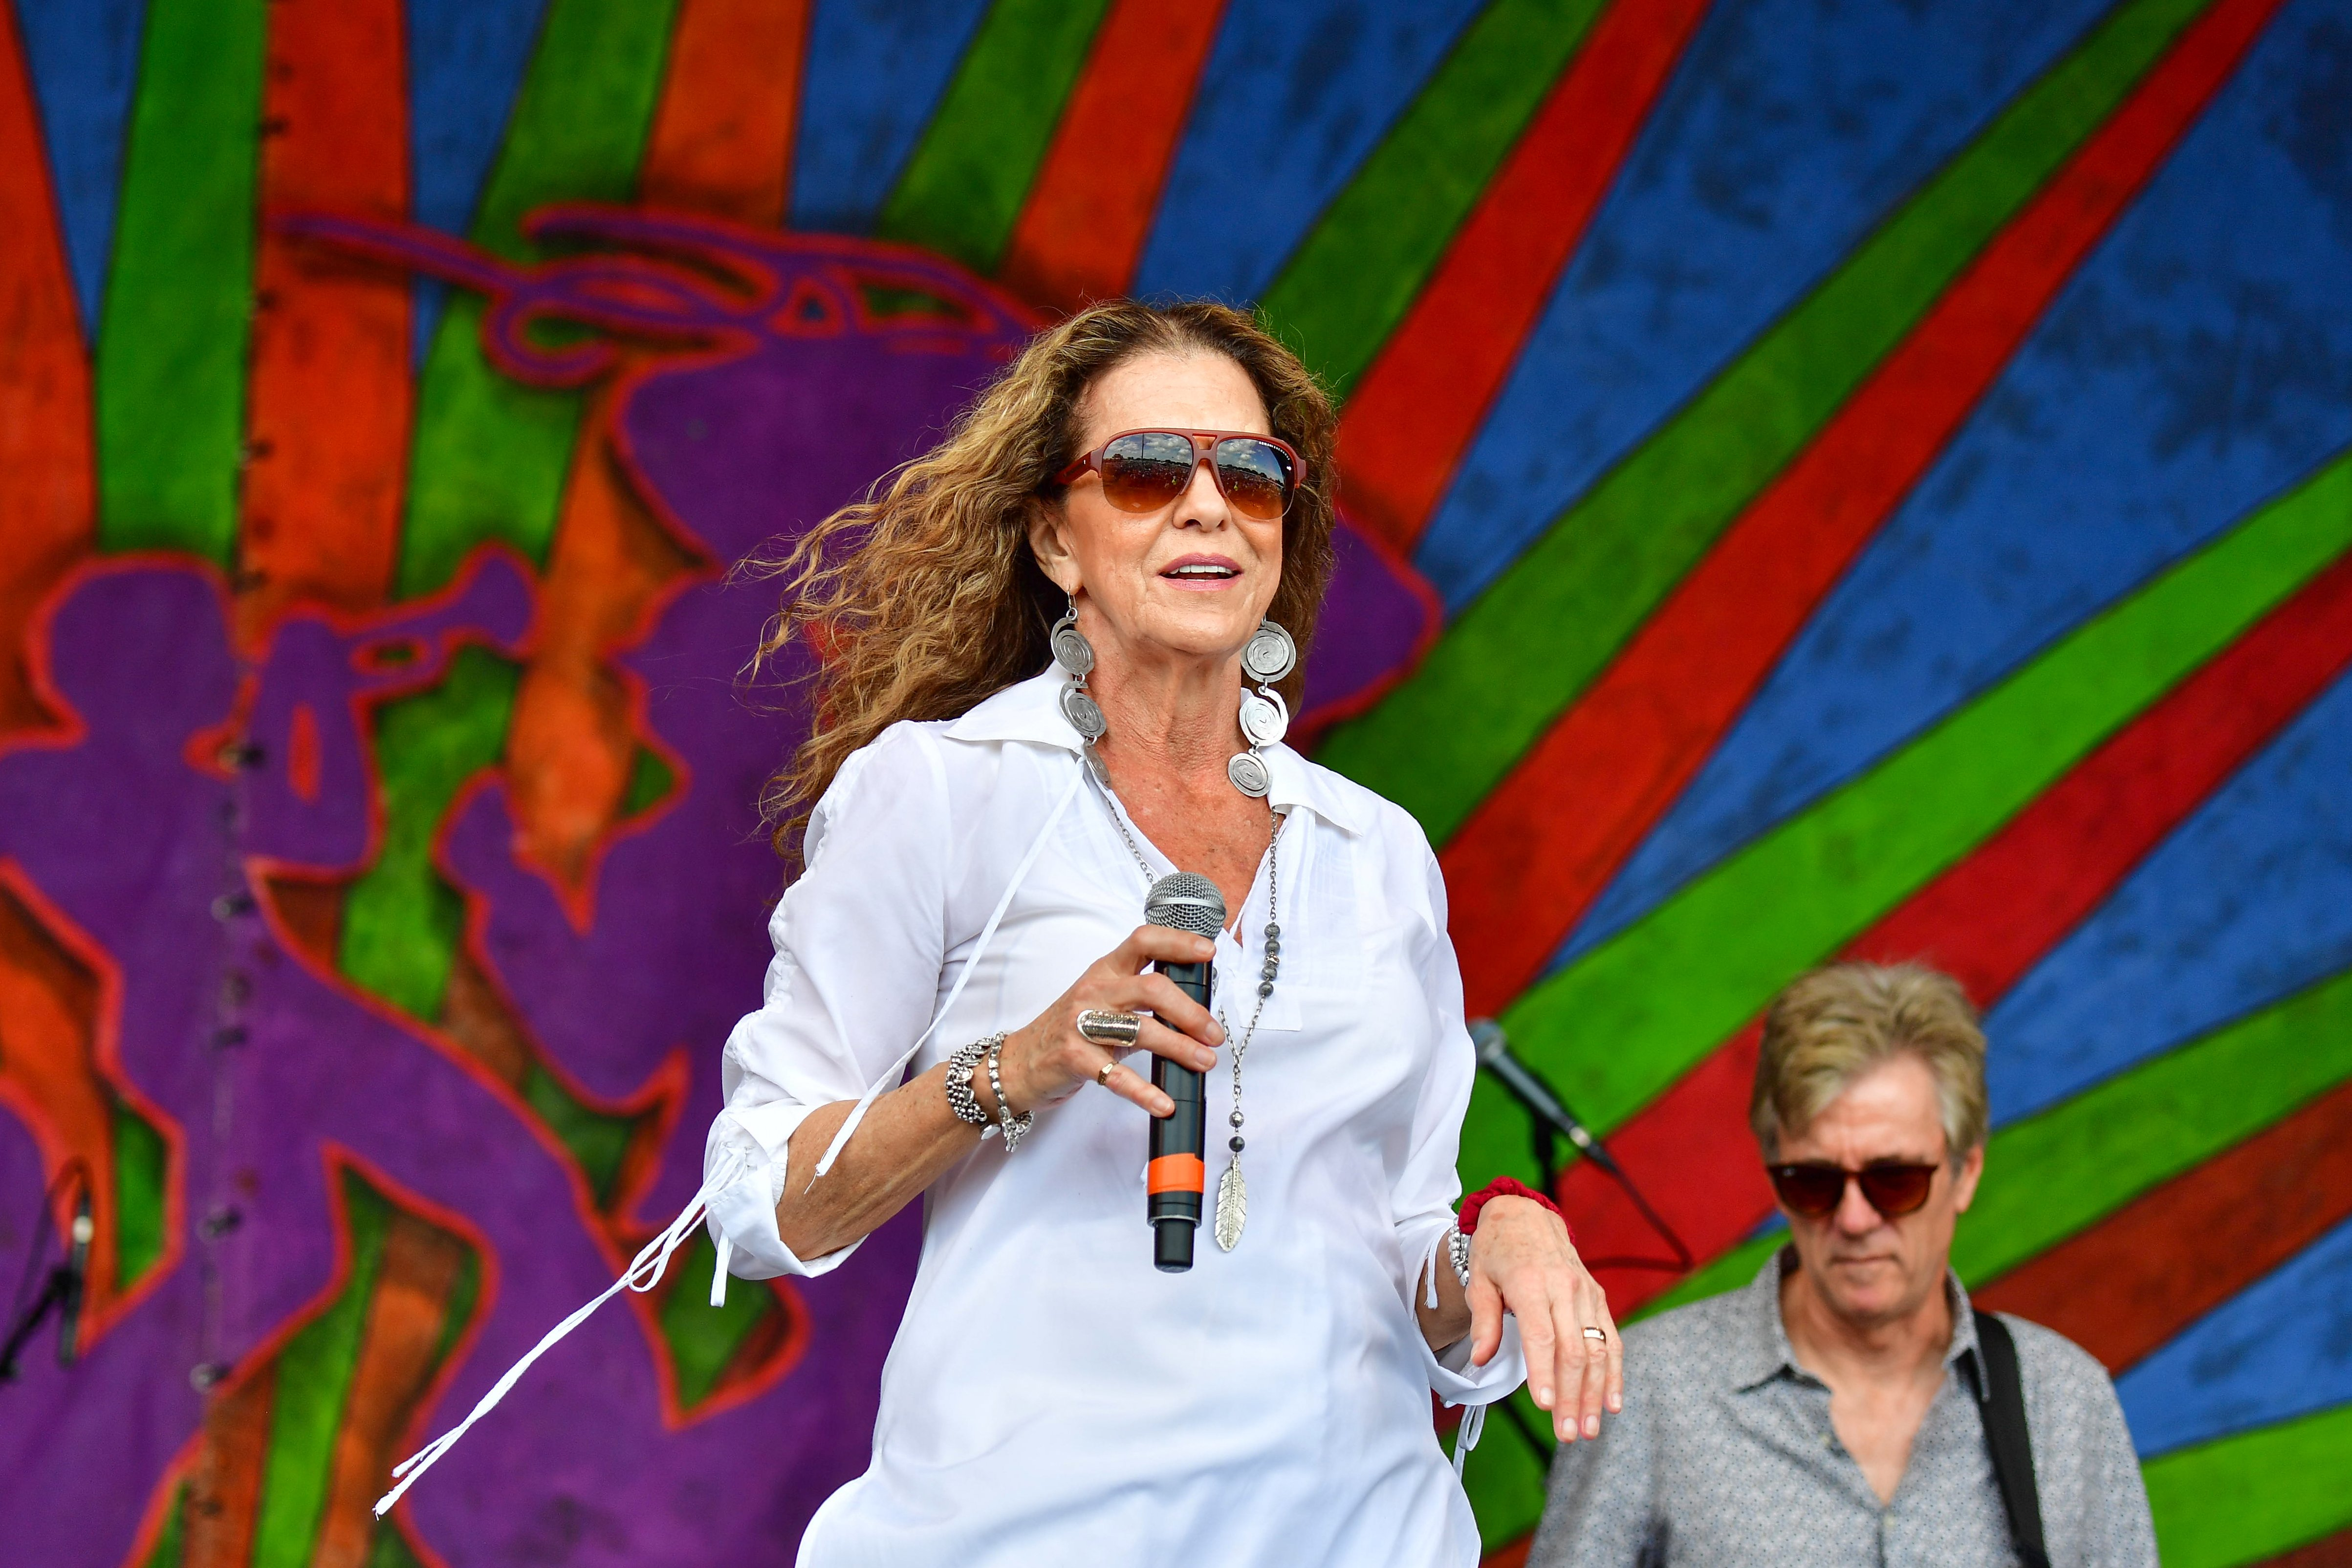 Rita Coolidge performs during the 2019 New Orleans Jazz & Heritage Festival 50th Anniversary | Photo: Getty Images